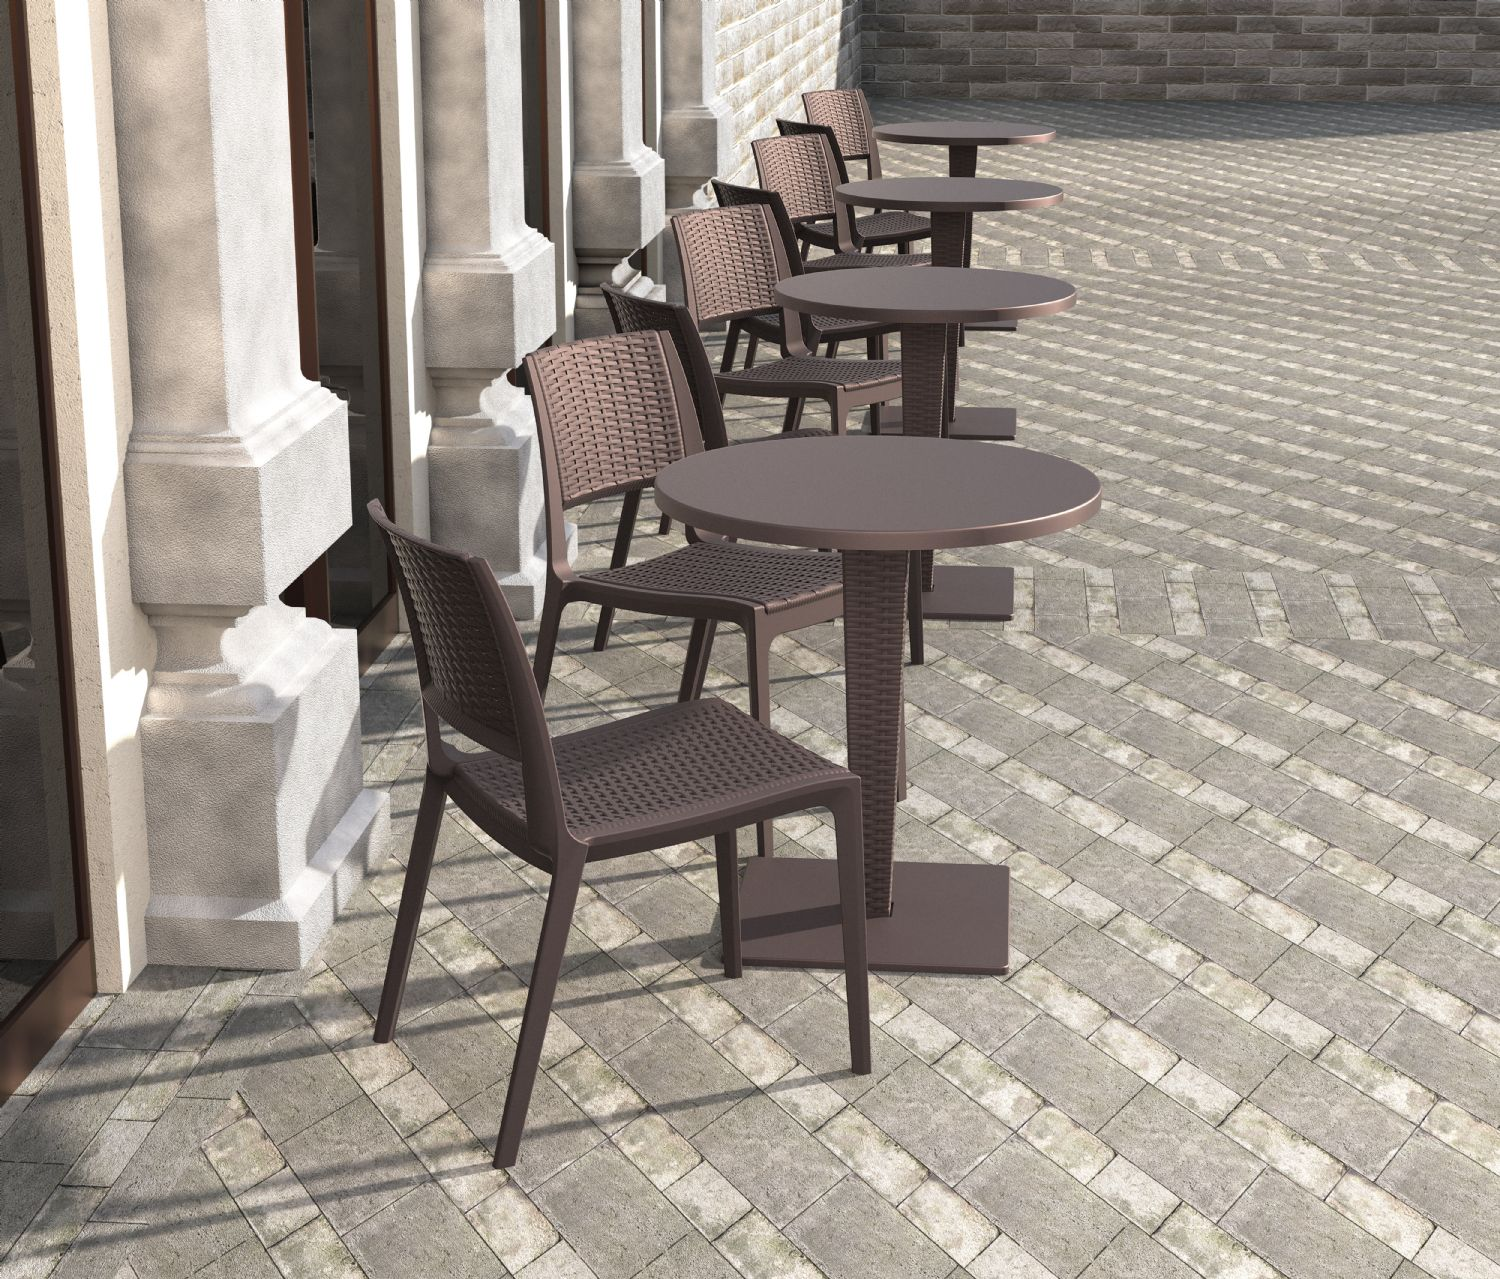 Verona Resin Wickerlook Dining Chair Brown ISP830-BR - 4